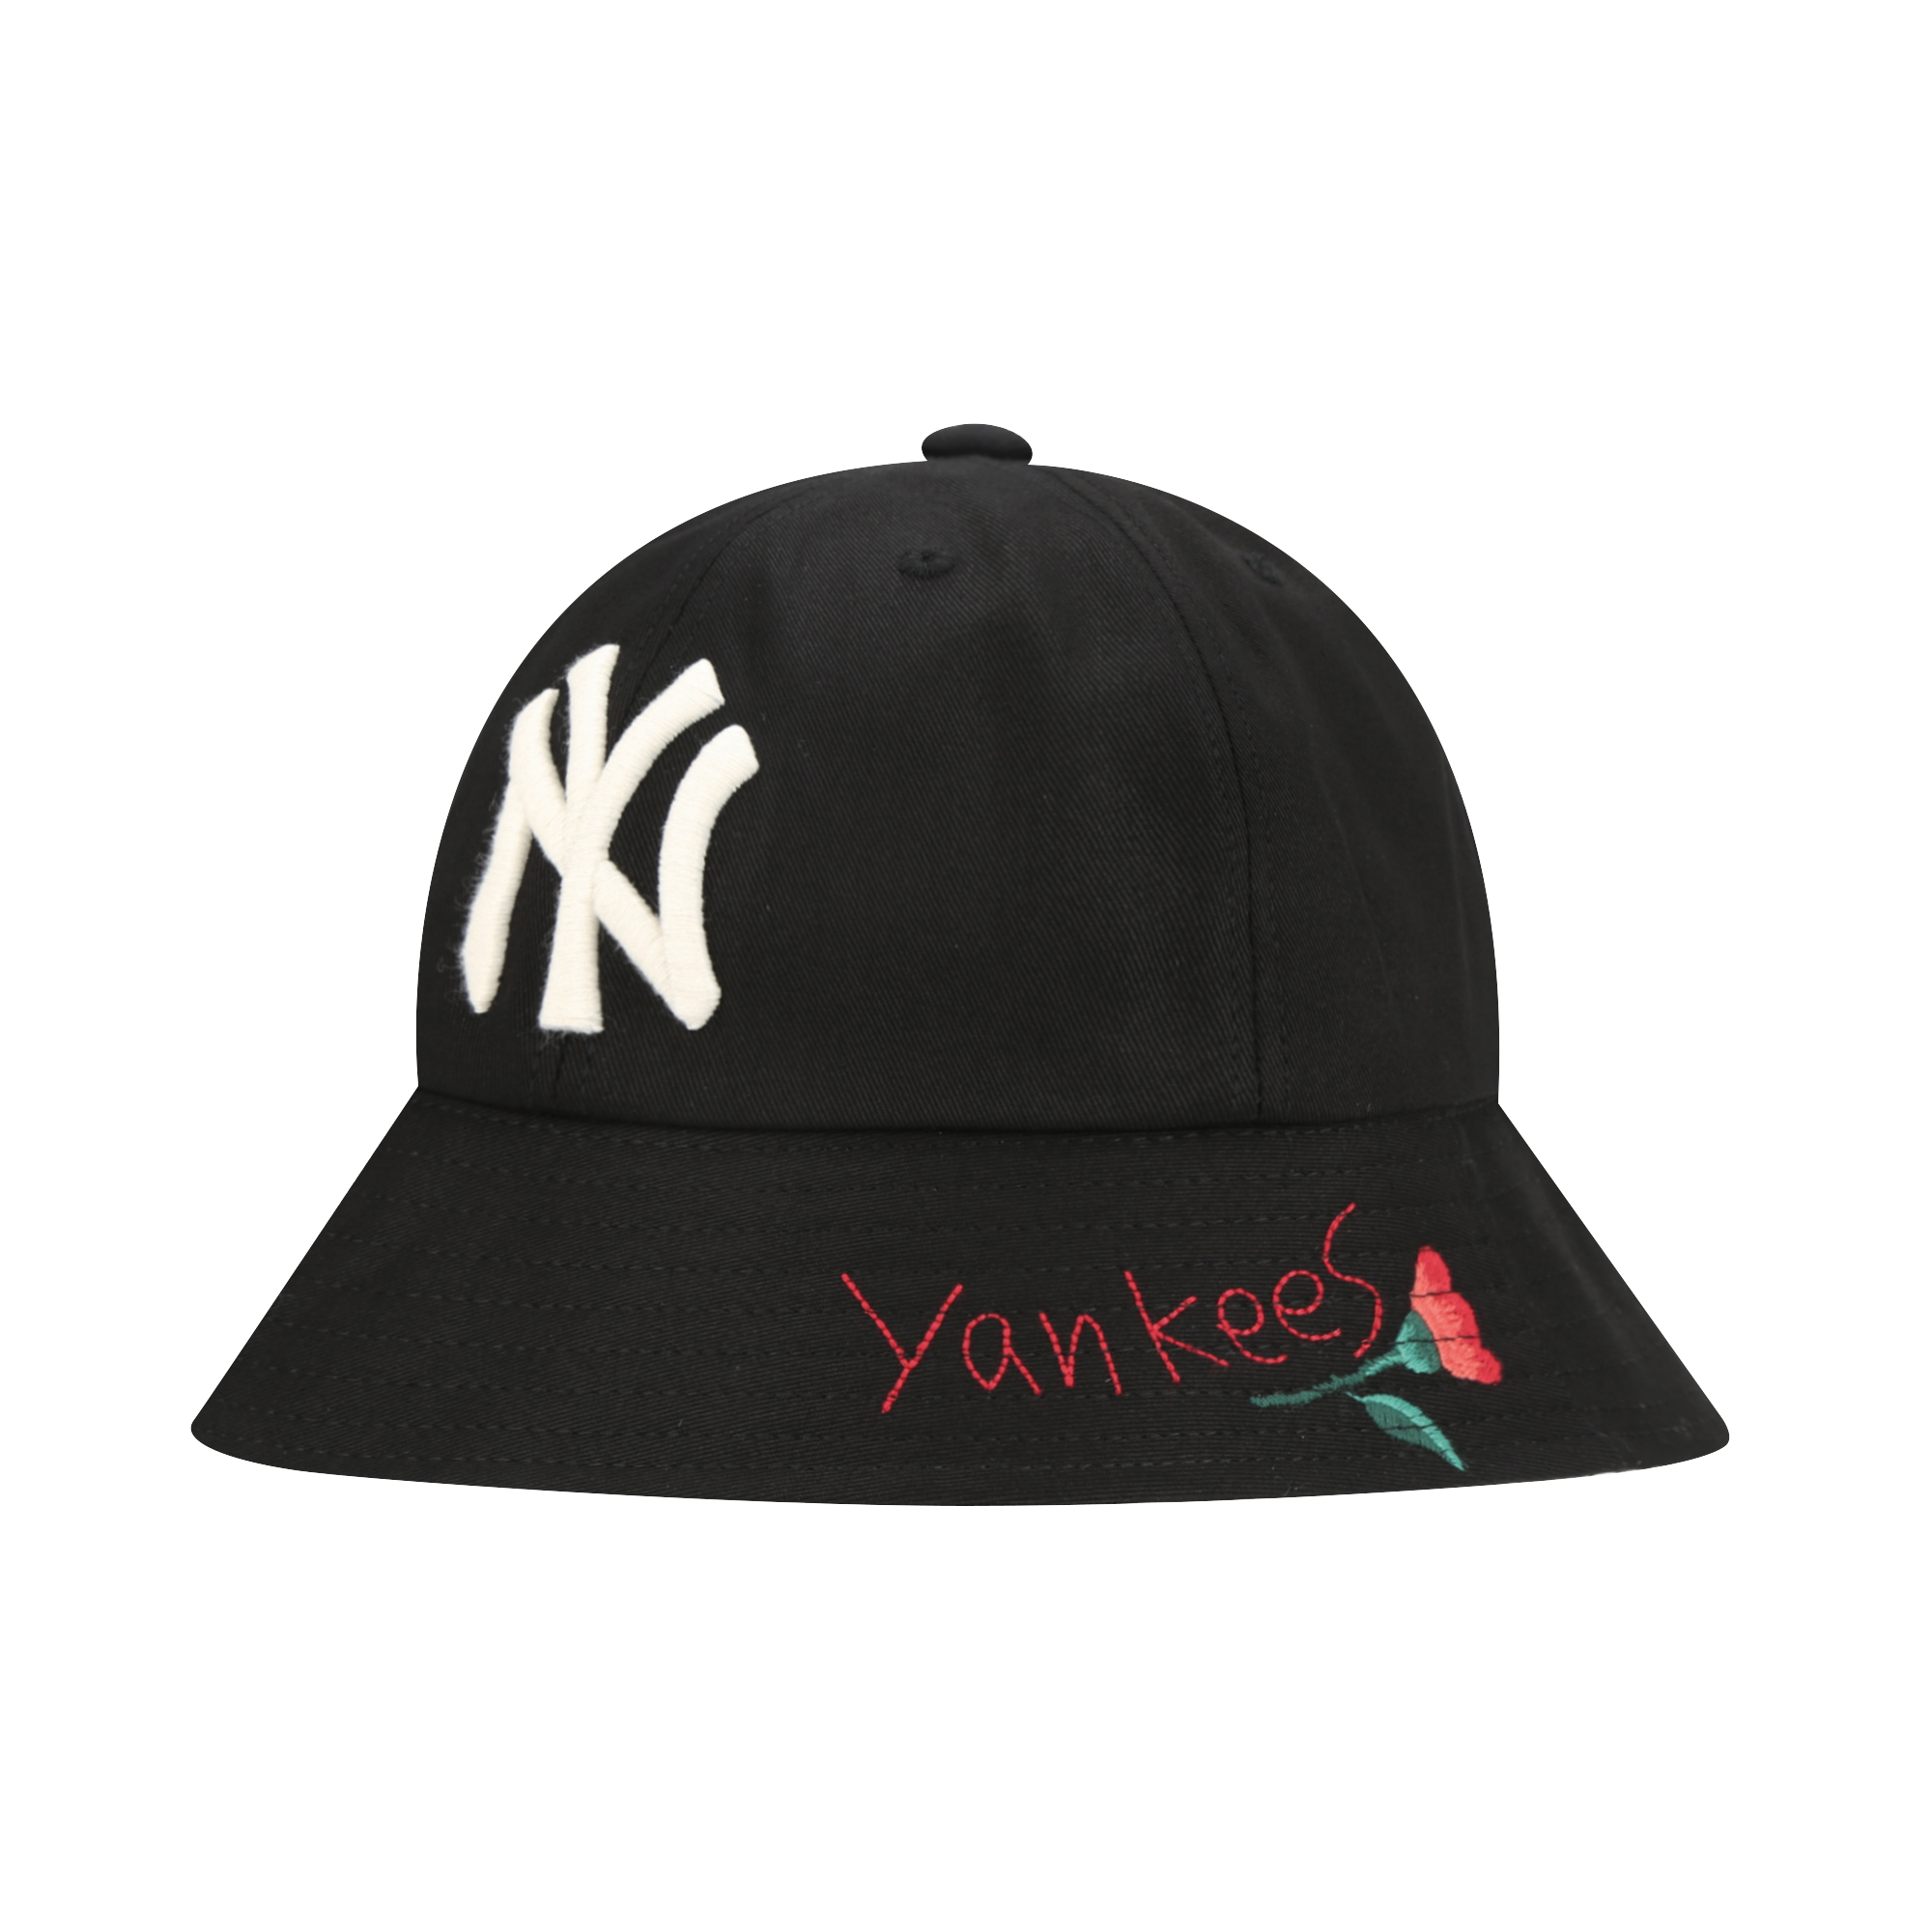 NEW YORK YANKEES ROSE BEE DOME HAT